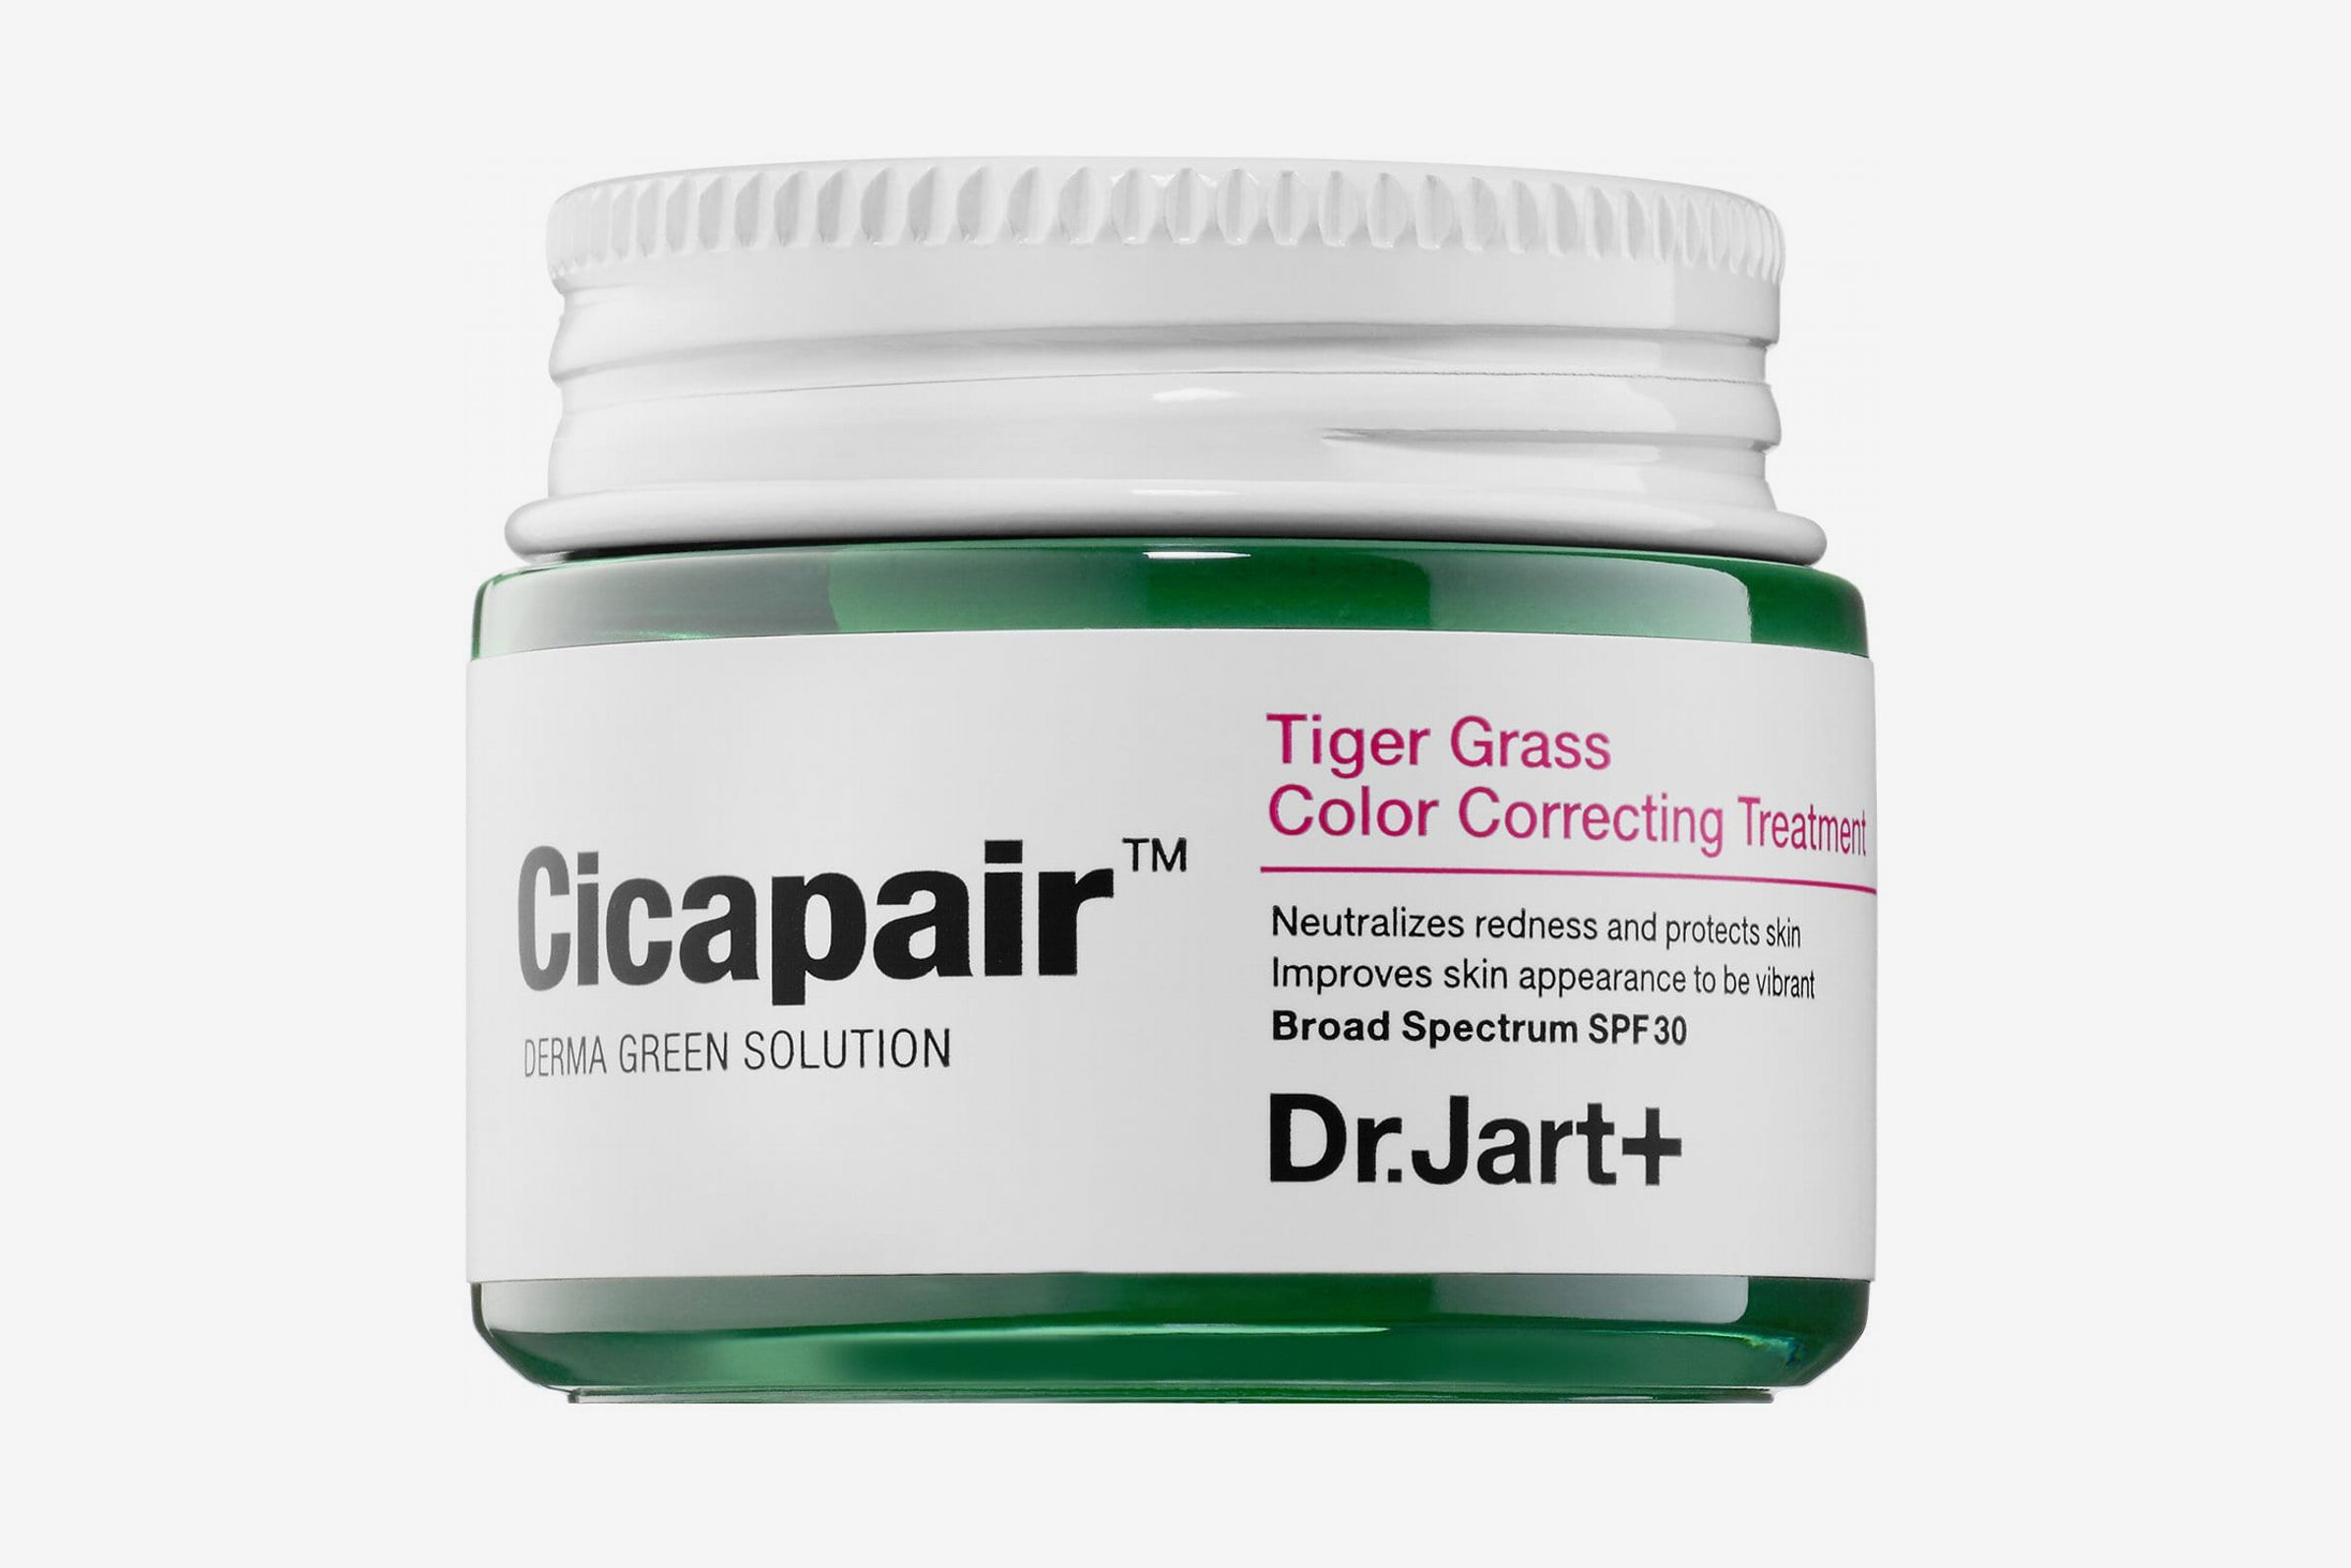 Dr. Jart Cicapair Tiger Grass Color Correcting Treatment SPF 30